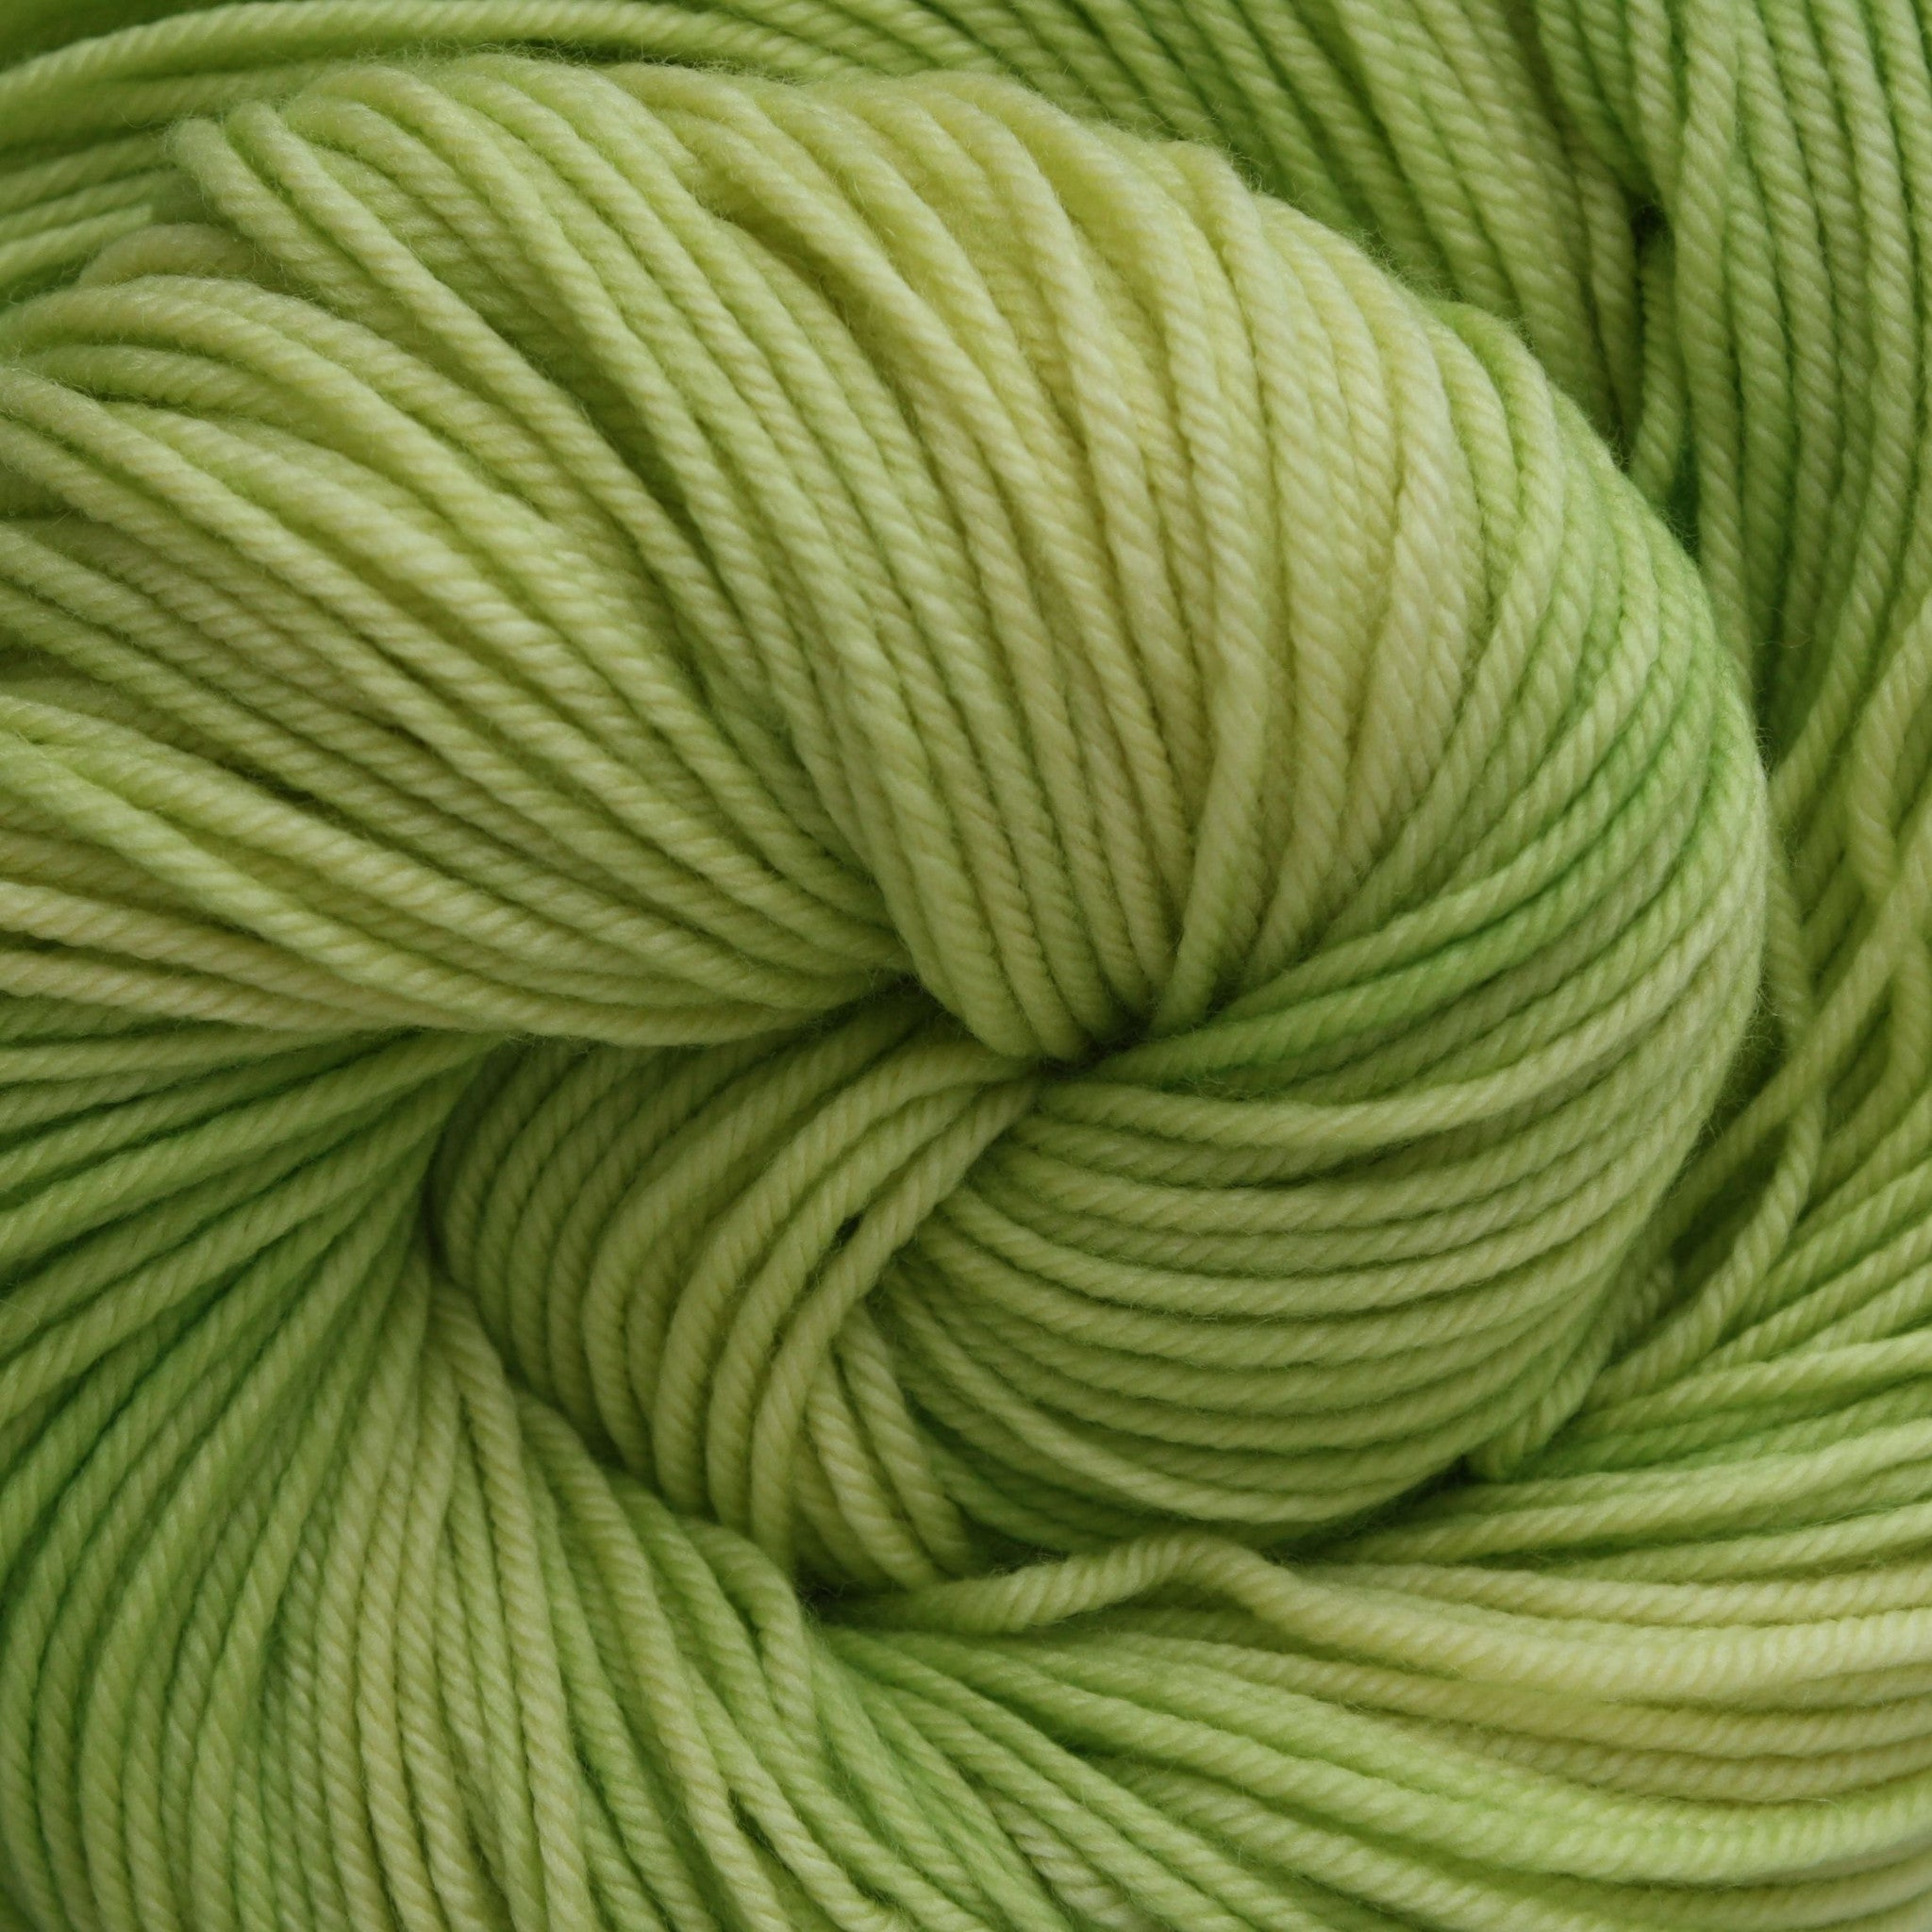 Calypso Yarn | Colorway: Lemon Lime